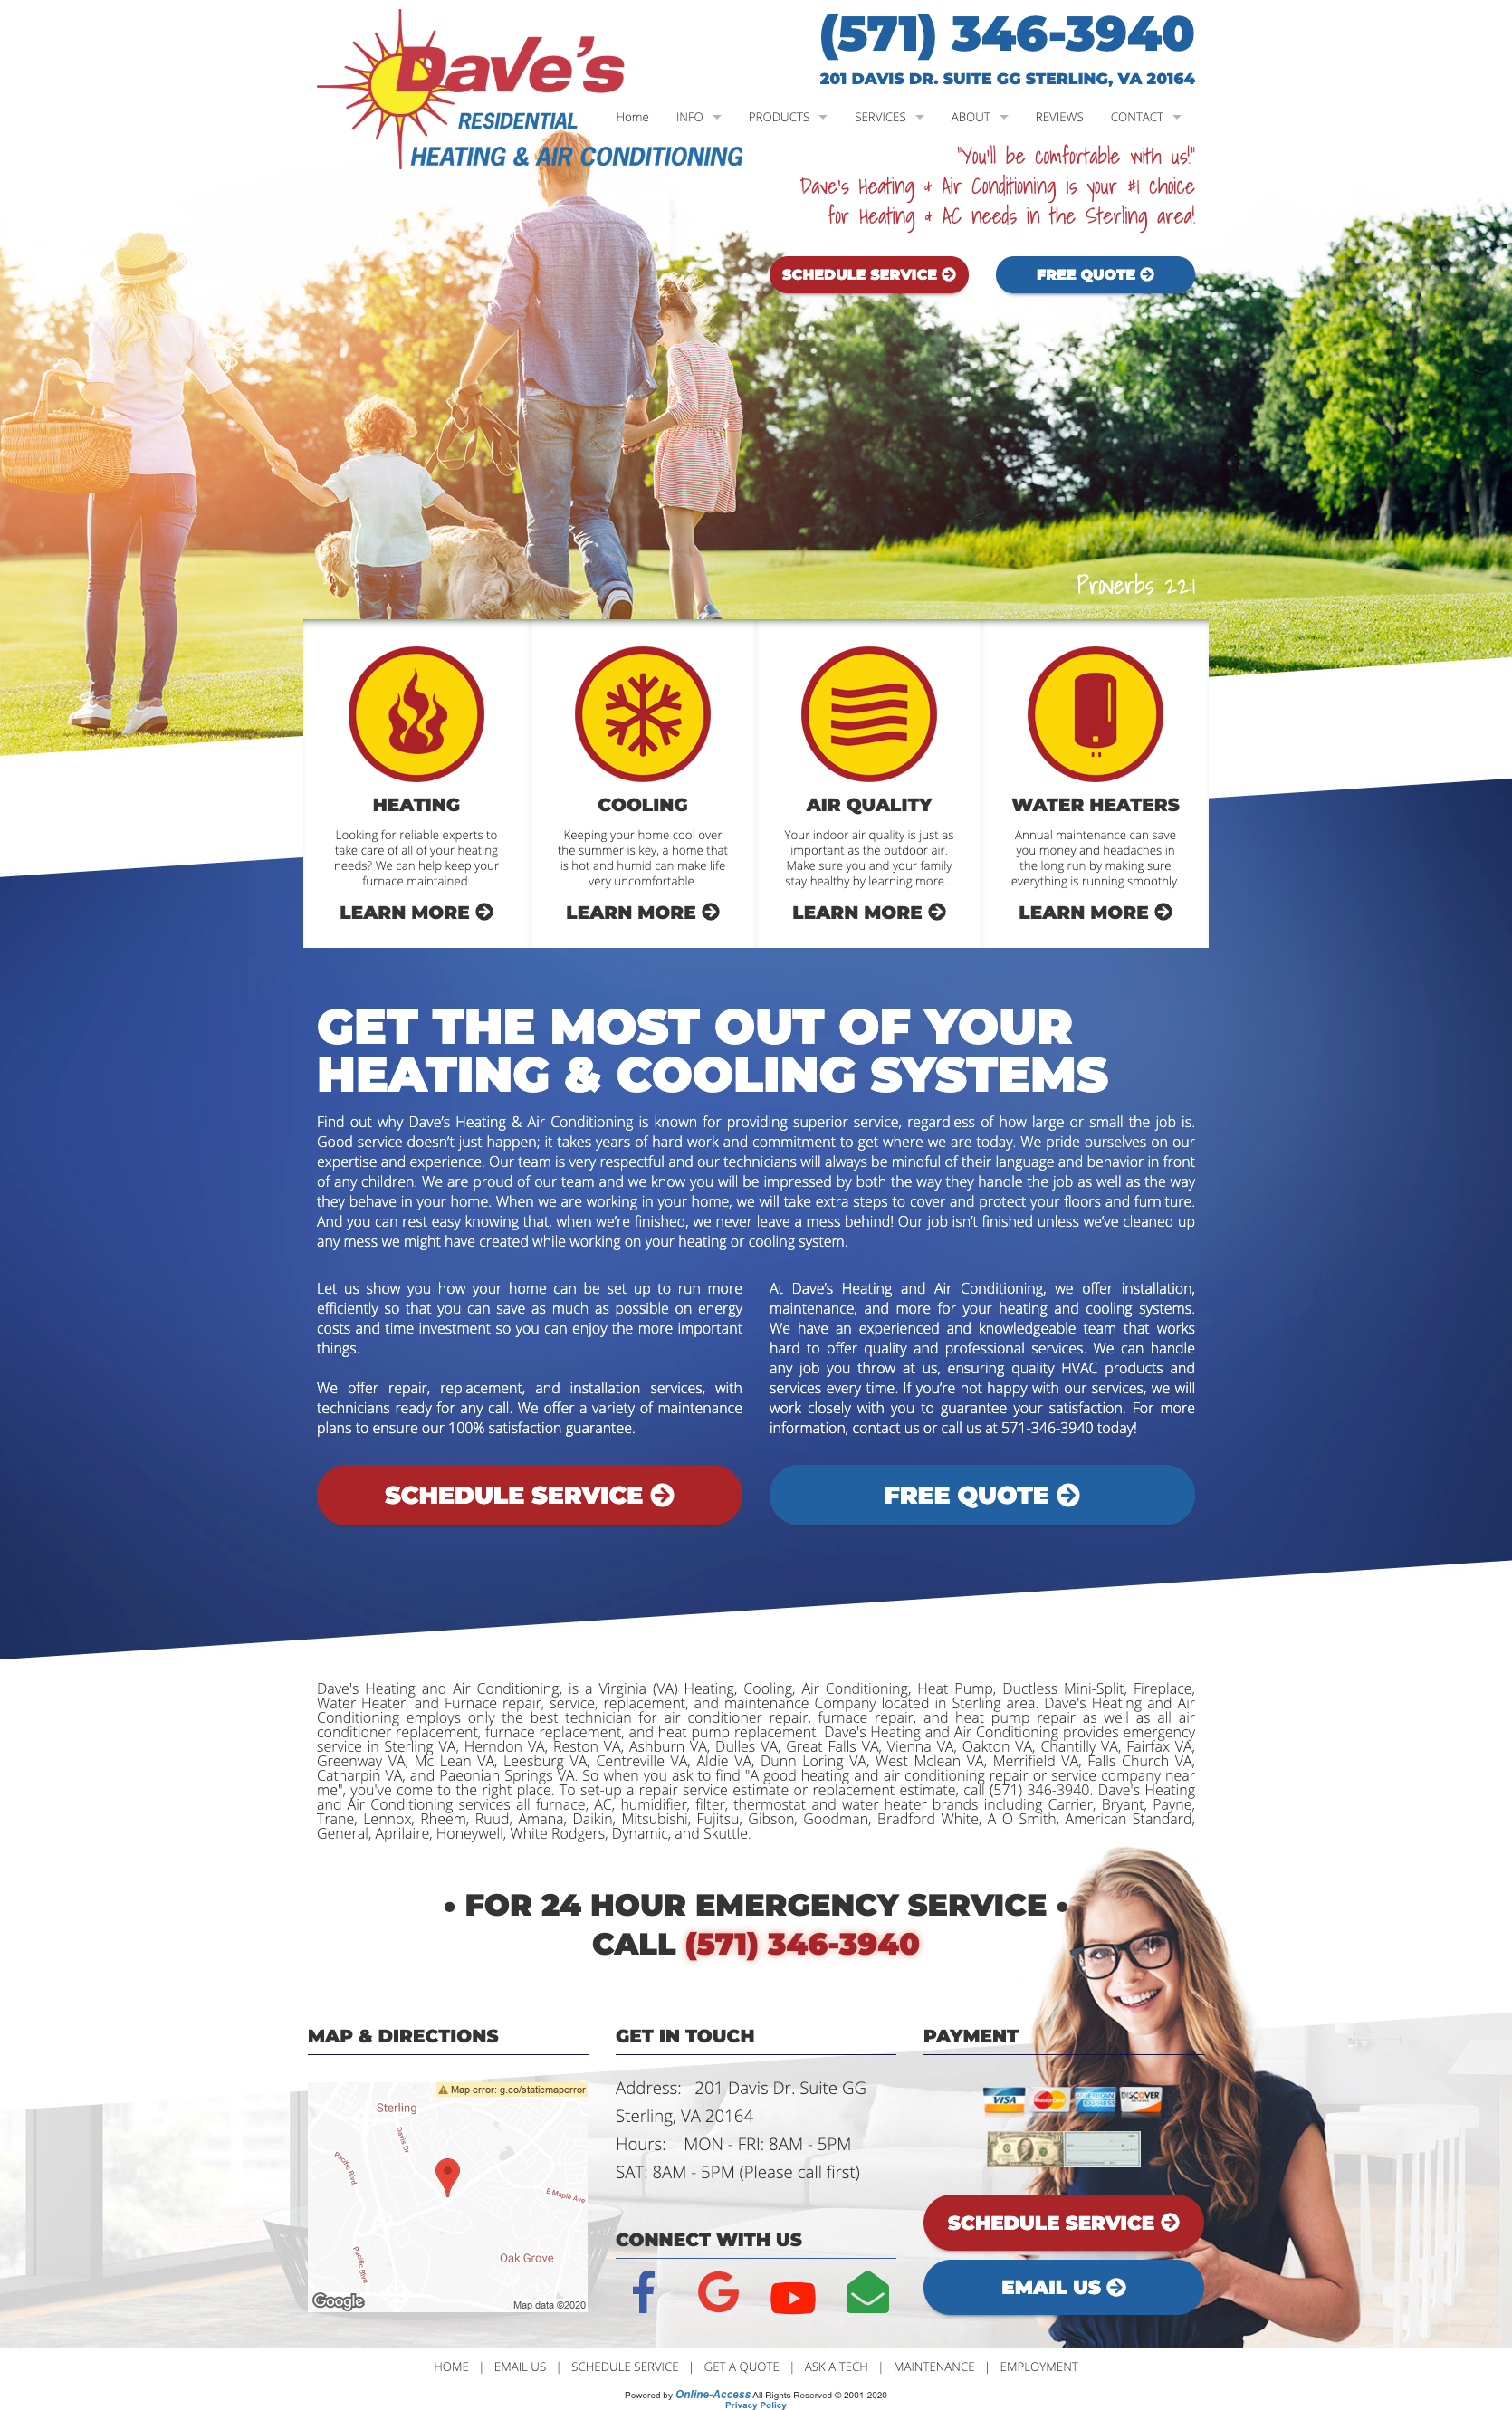 Contemporary Heating And Air Conditioning Website Design Classic Modern Clean In 2020 Modern Website Design